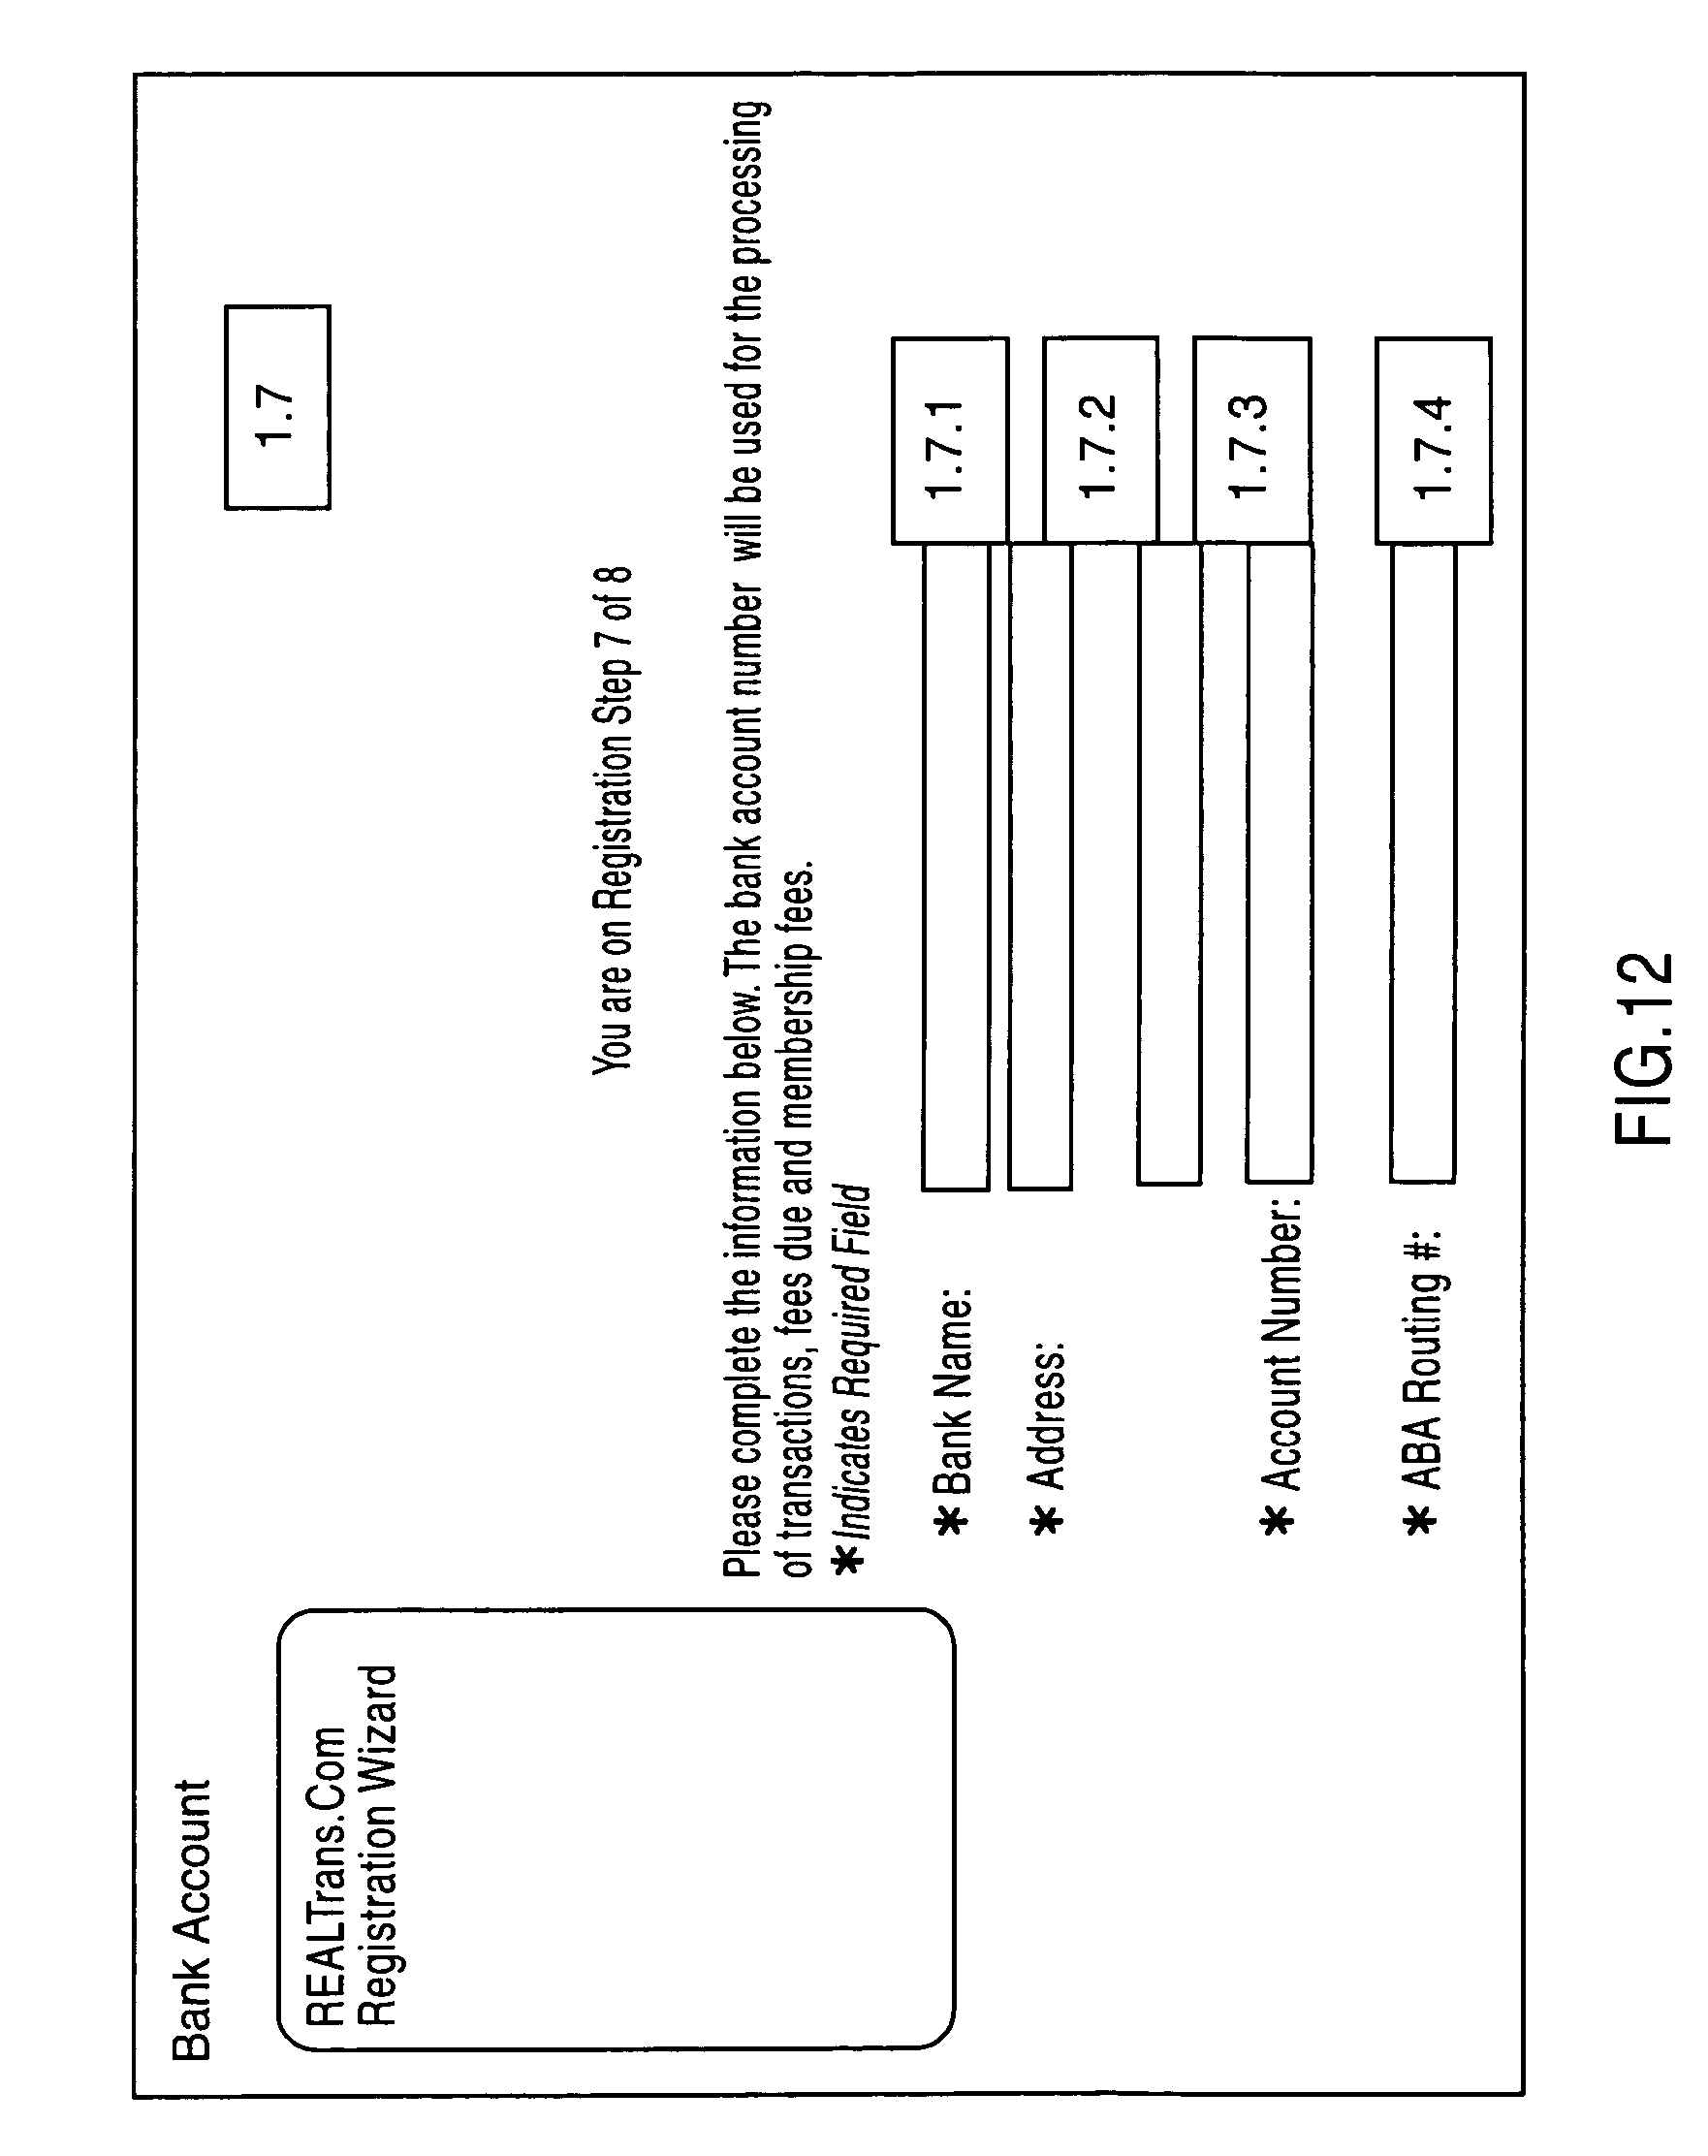 Commerical Invoice Template Patent Us  Expense Tracking Electronic Ordering Invoice  Palm Beach County Business Tax Receipt Excel with How To Do An Invoice Word Patent Drawing How To Do Invoice Word